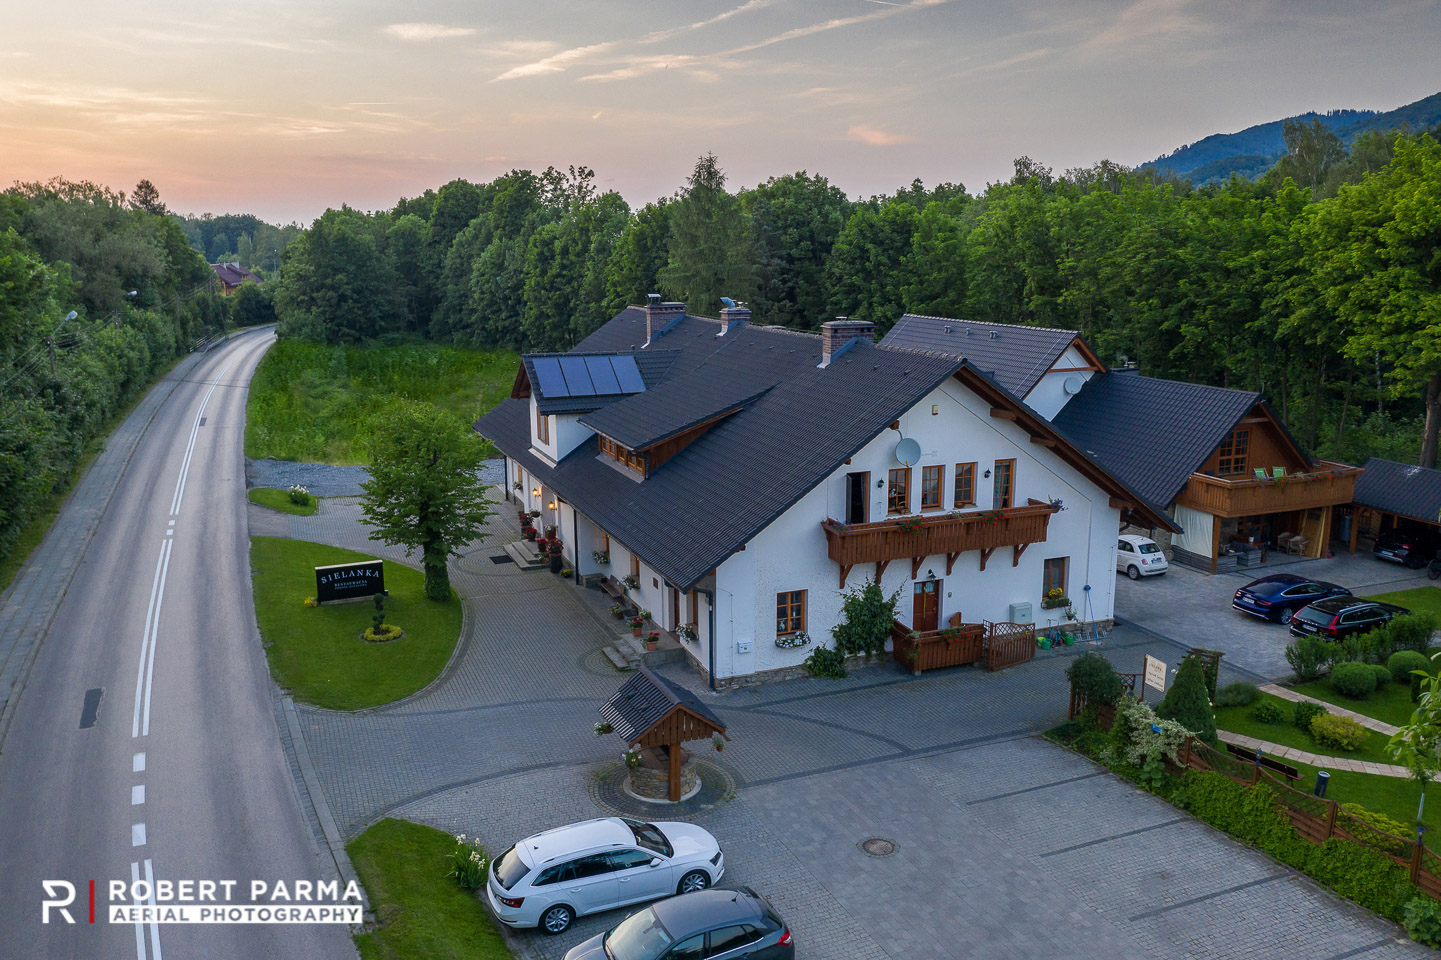 Aerial photography by Robert Parma